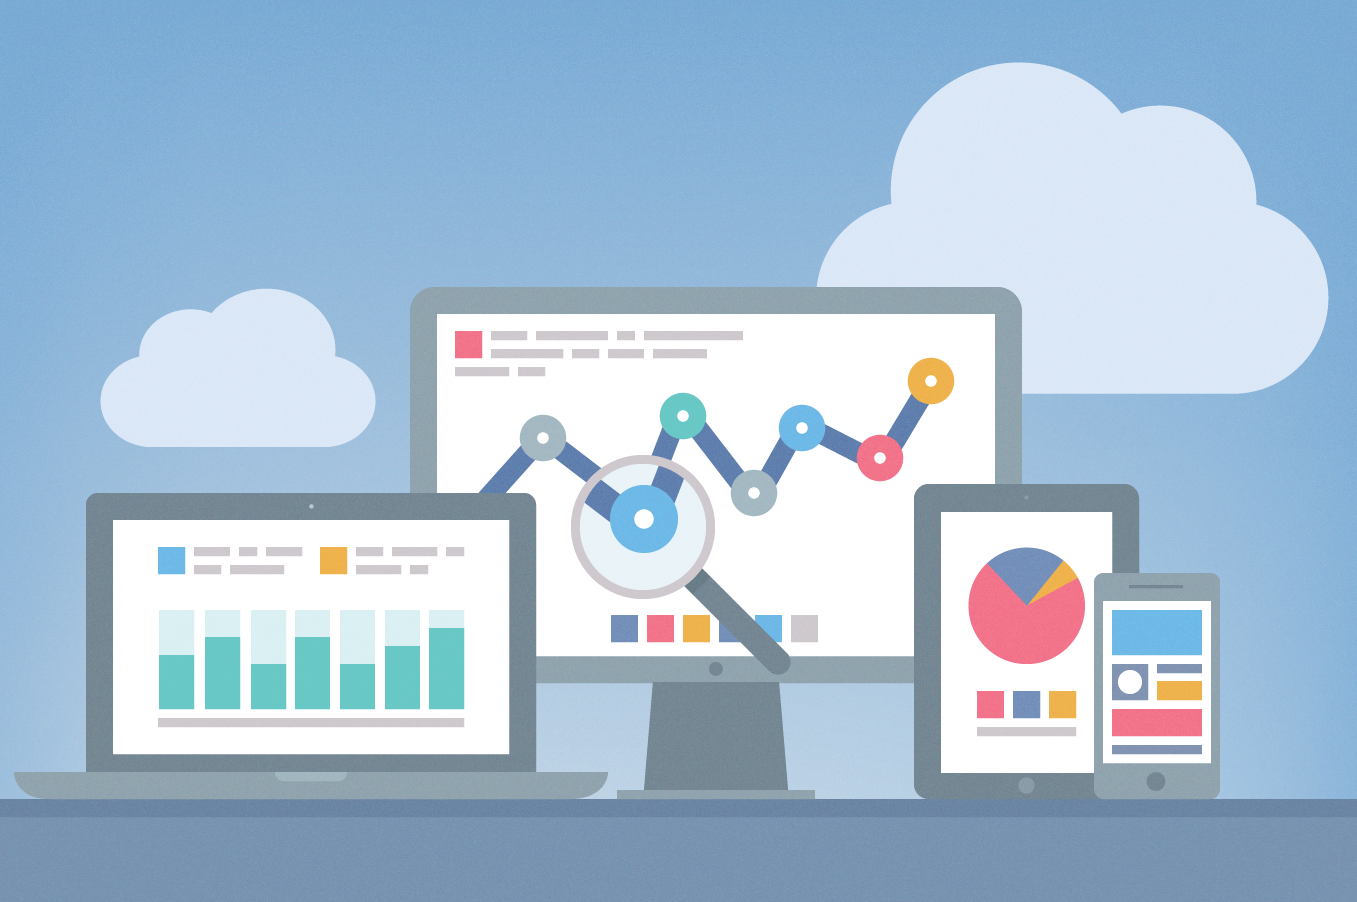 Making Sense of Google Analytics in a Few Easy Steps